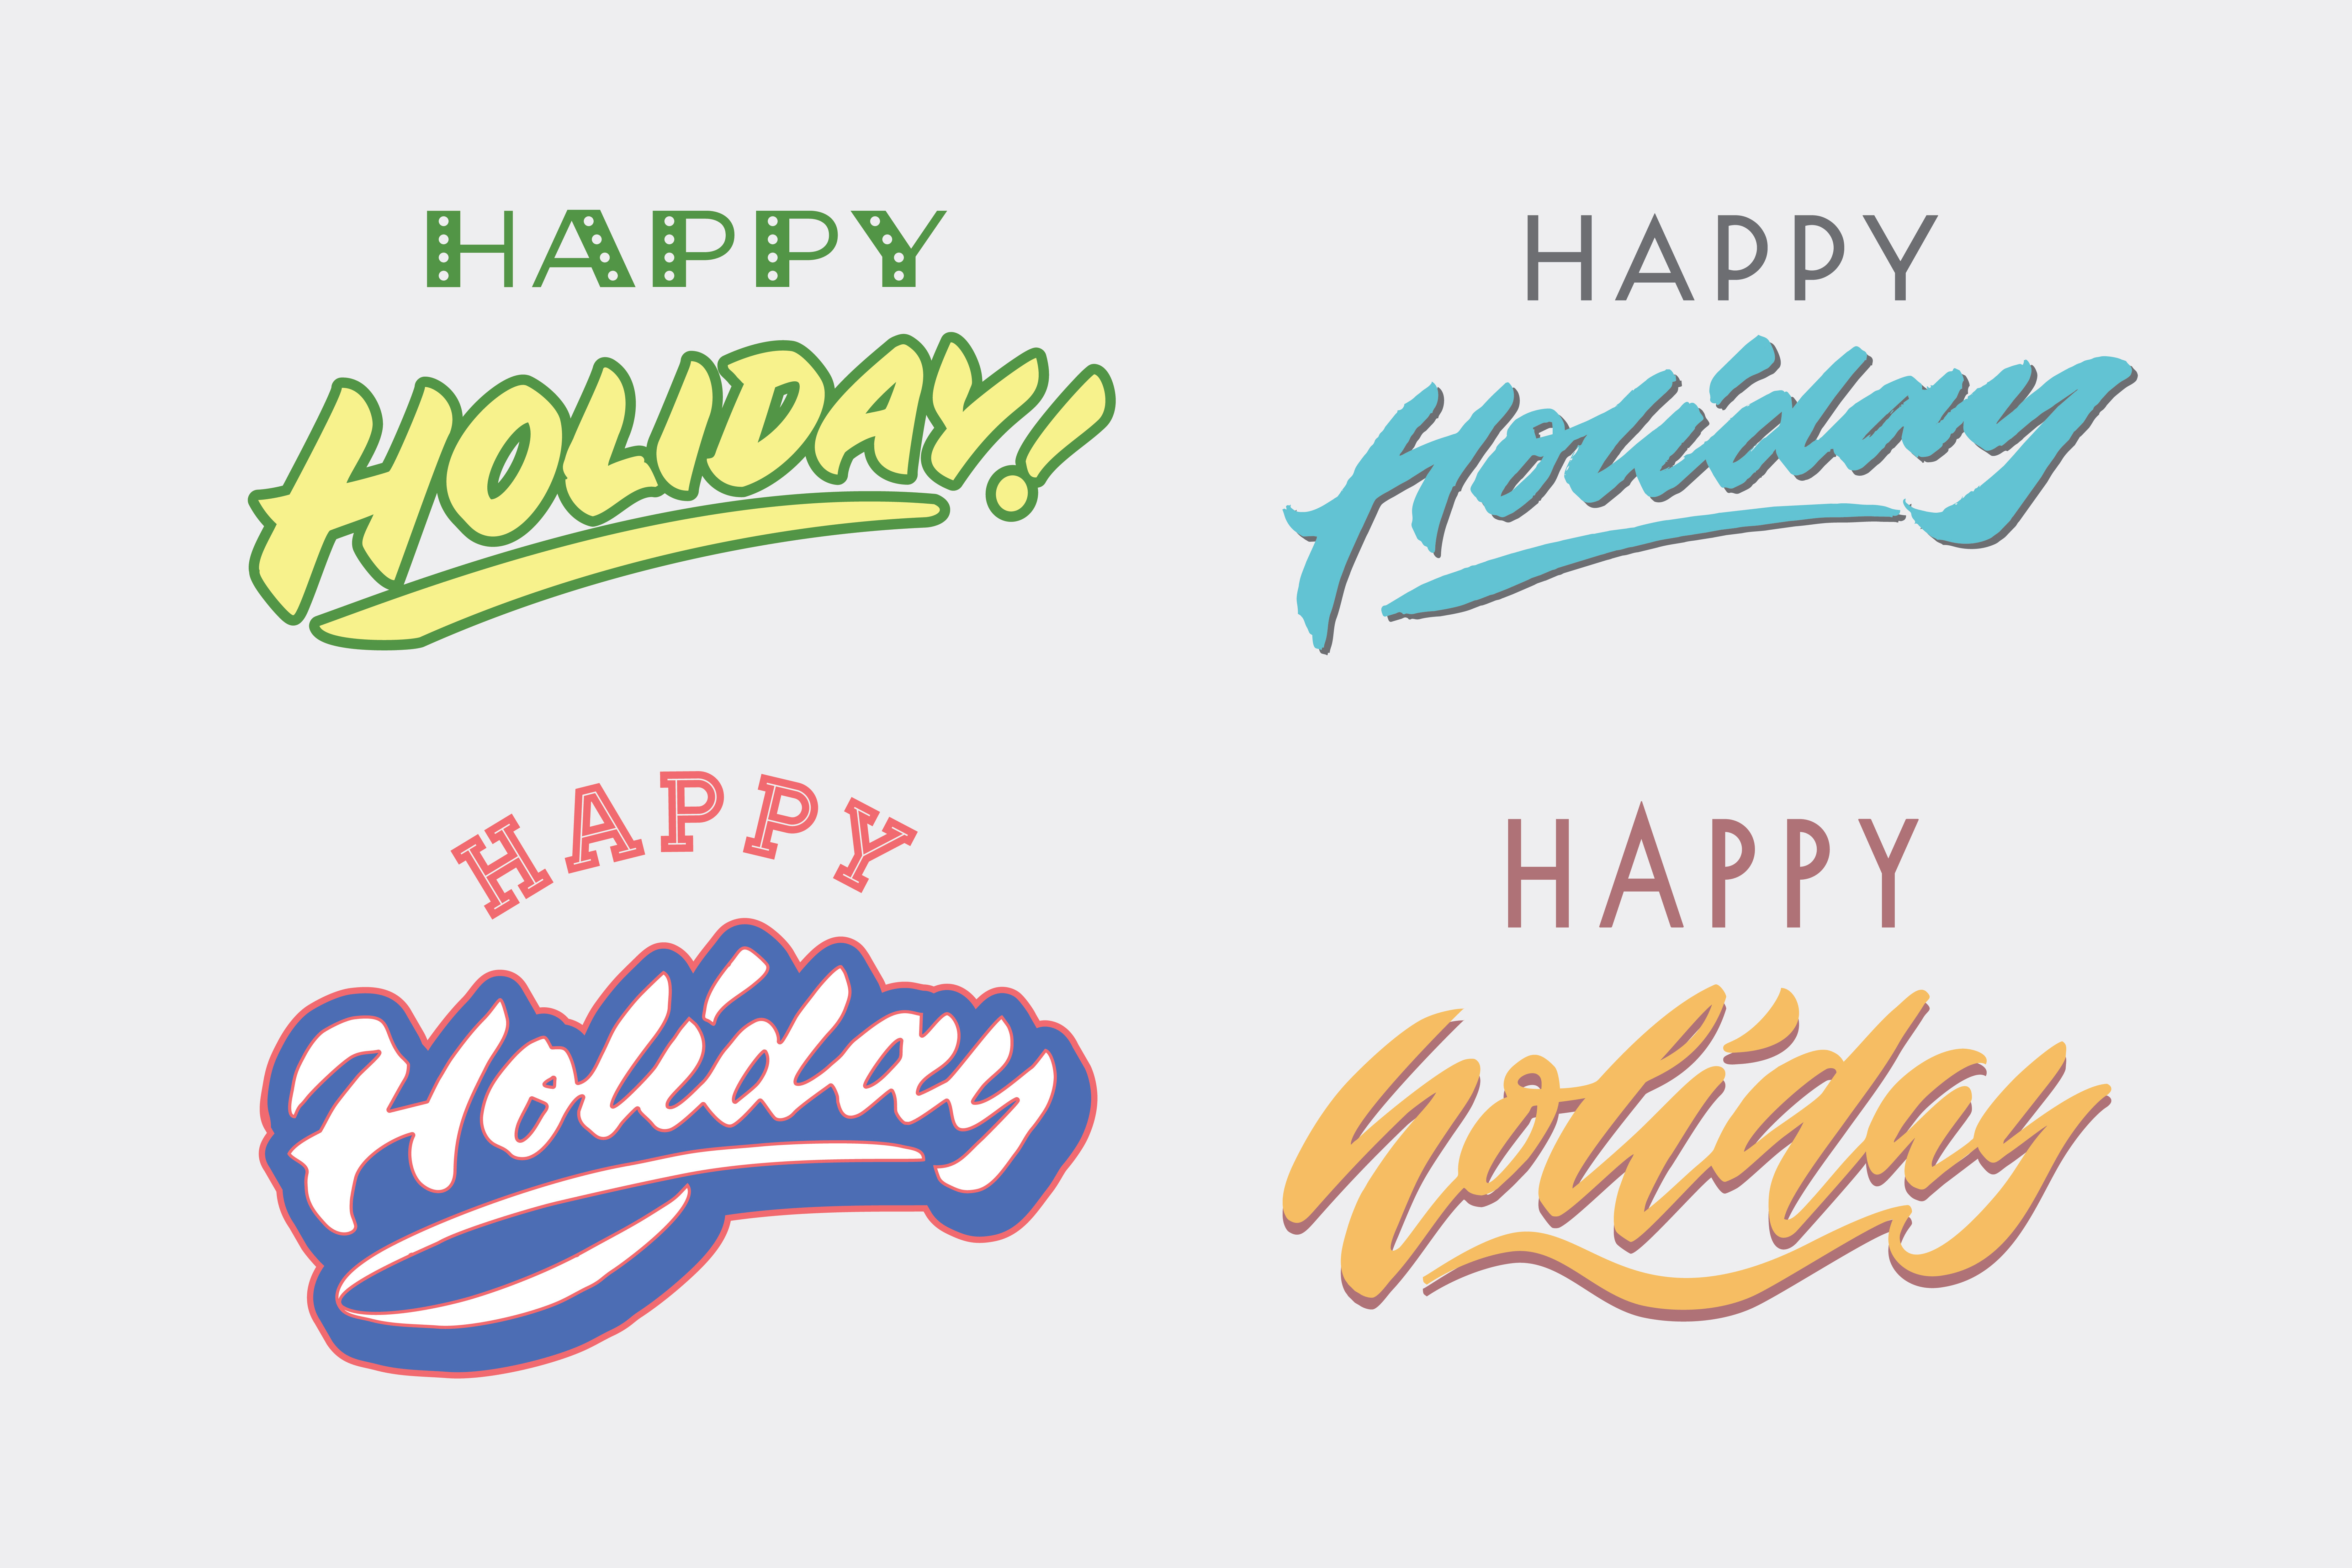 Download Free Happy Holiday Graphic By Brothers Graphic Creative Fabrica for Cricut Explore, Silhouette and other cutting machines.